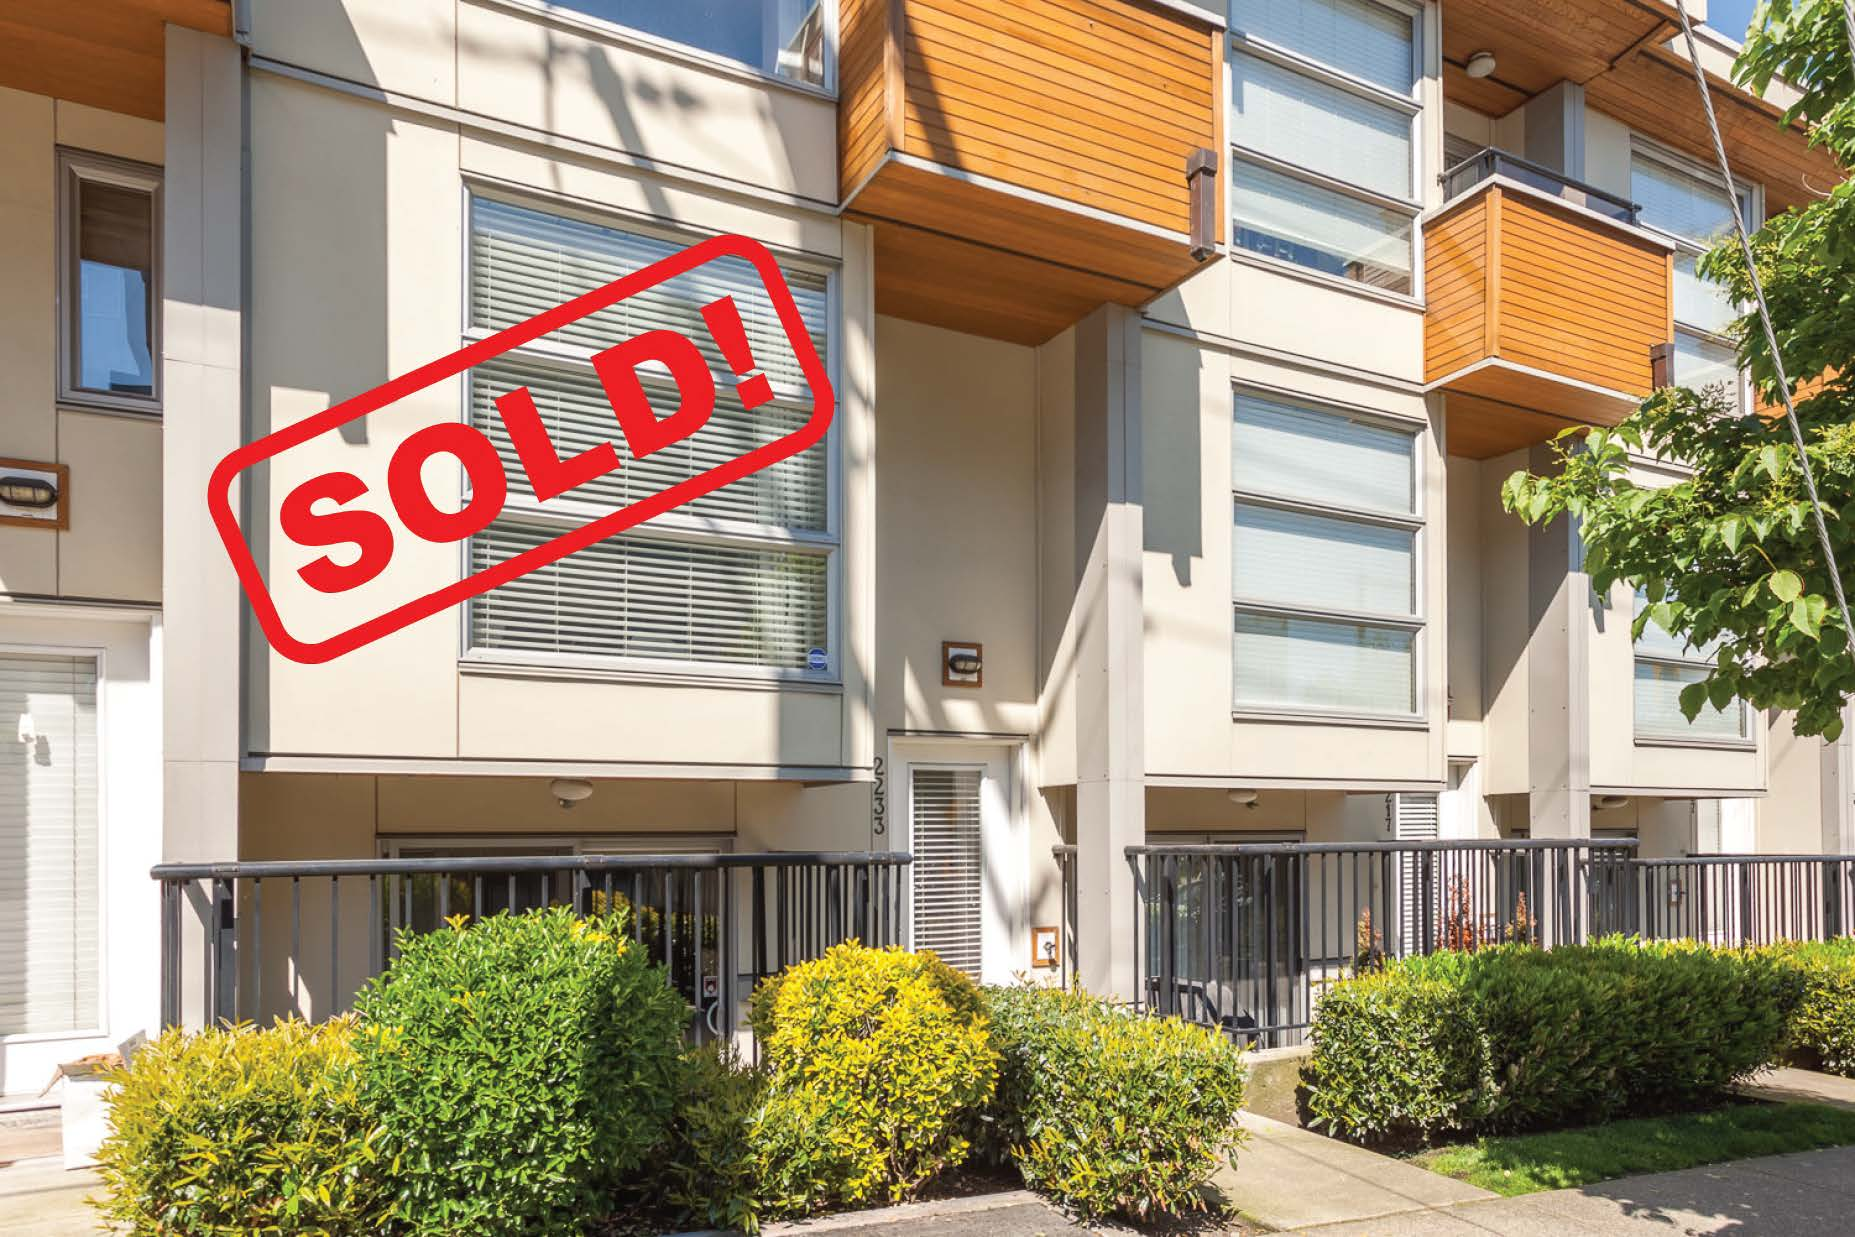 2233 Ash Street   sold for: $865,000  2 Bed | 2 Bath | 846 SF